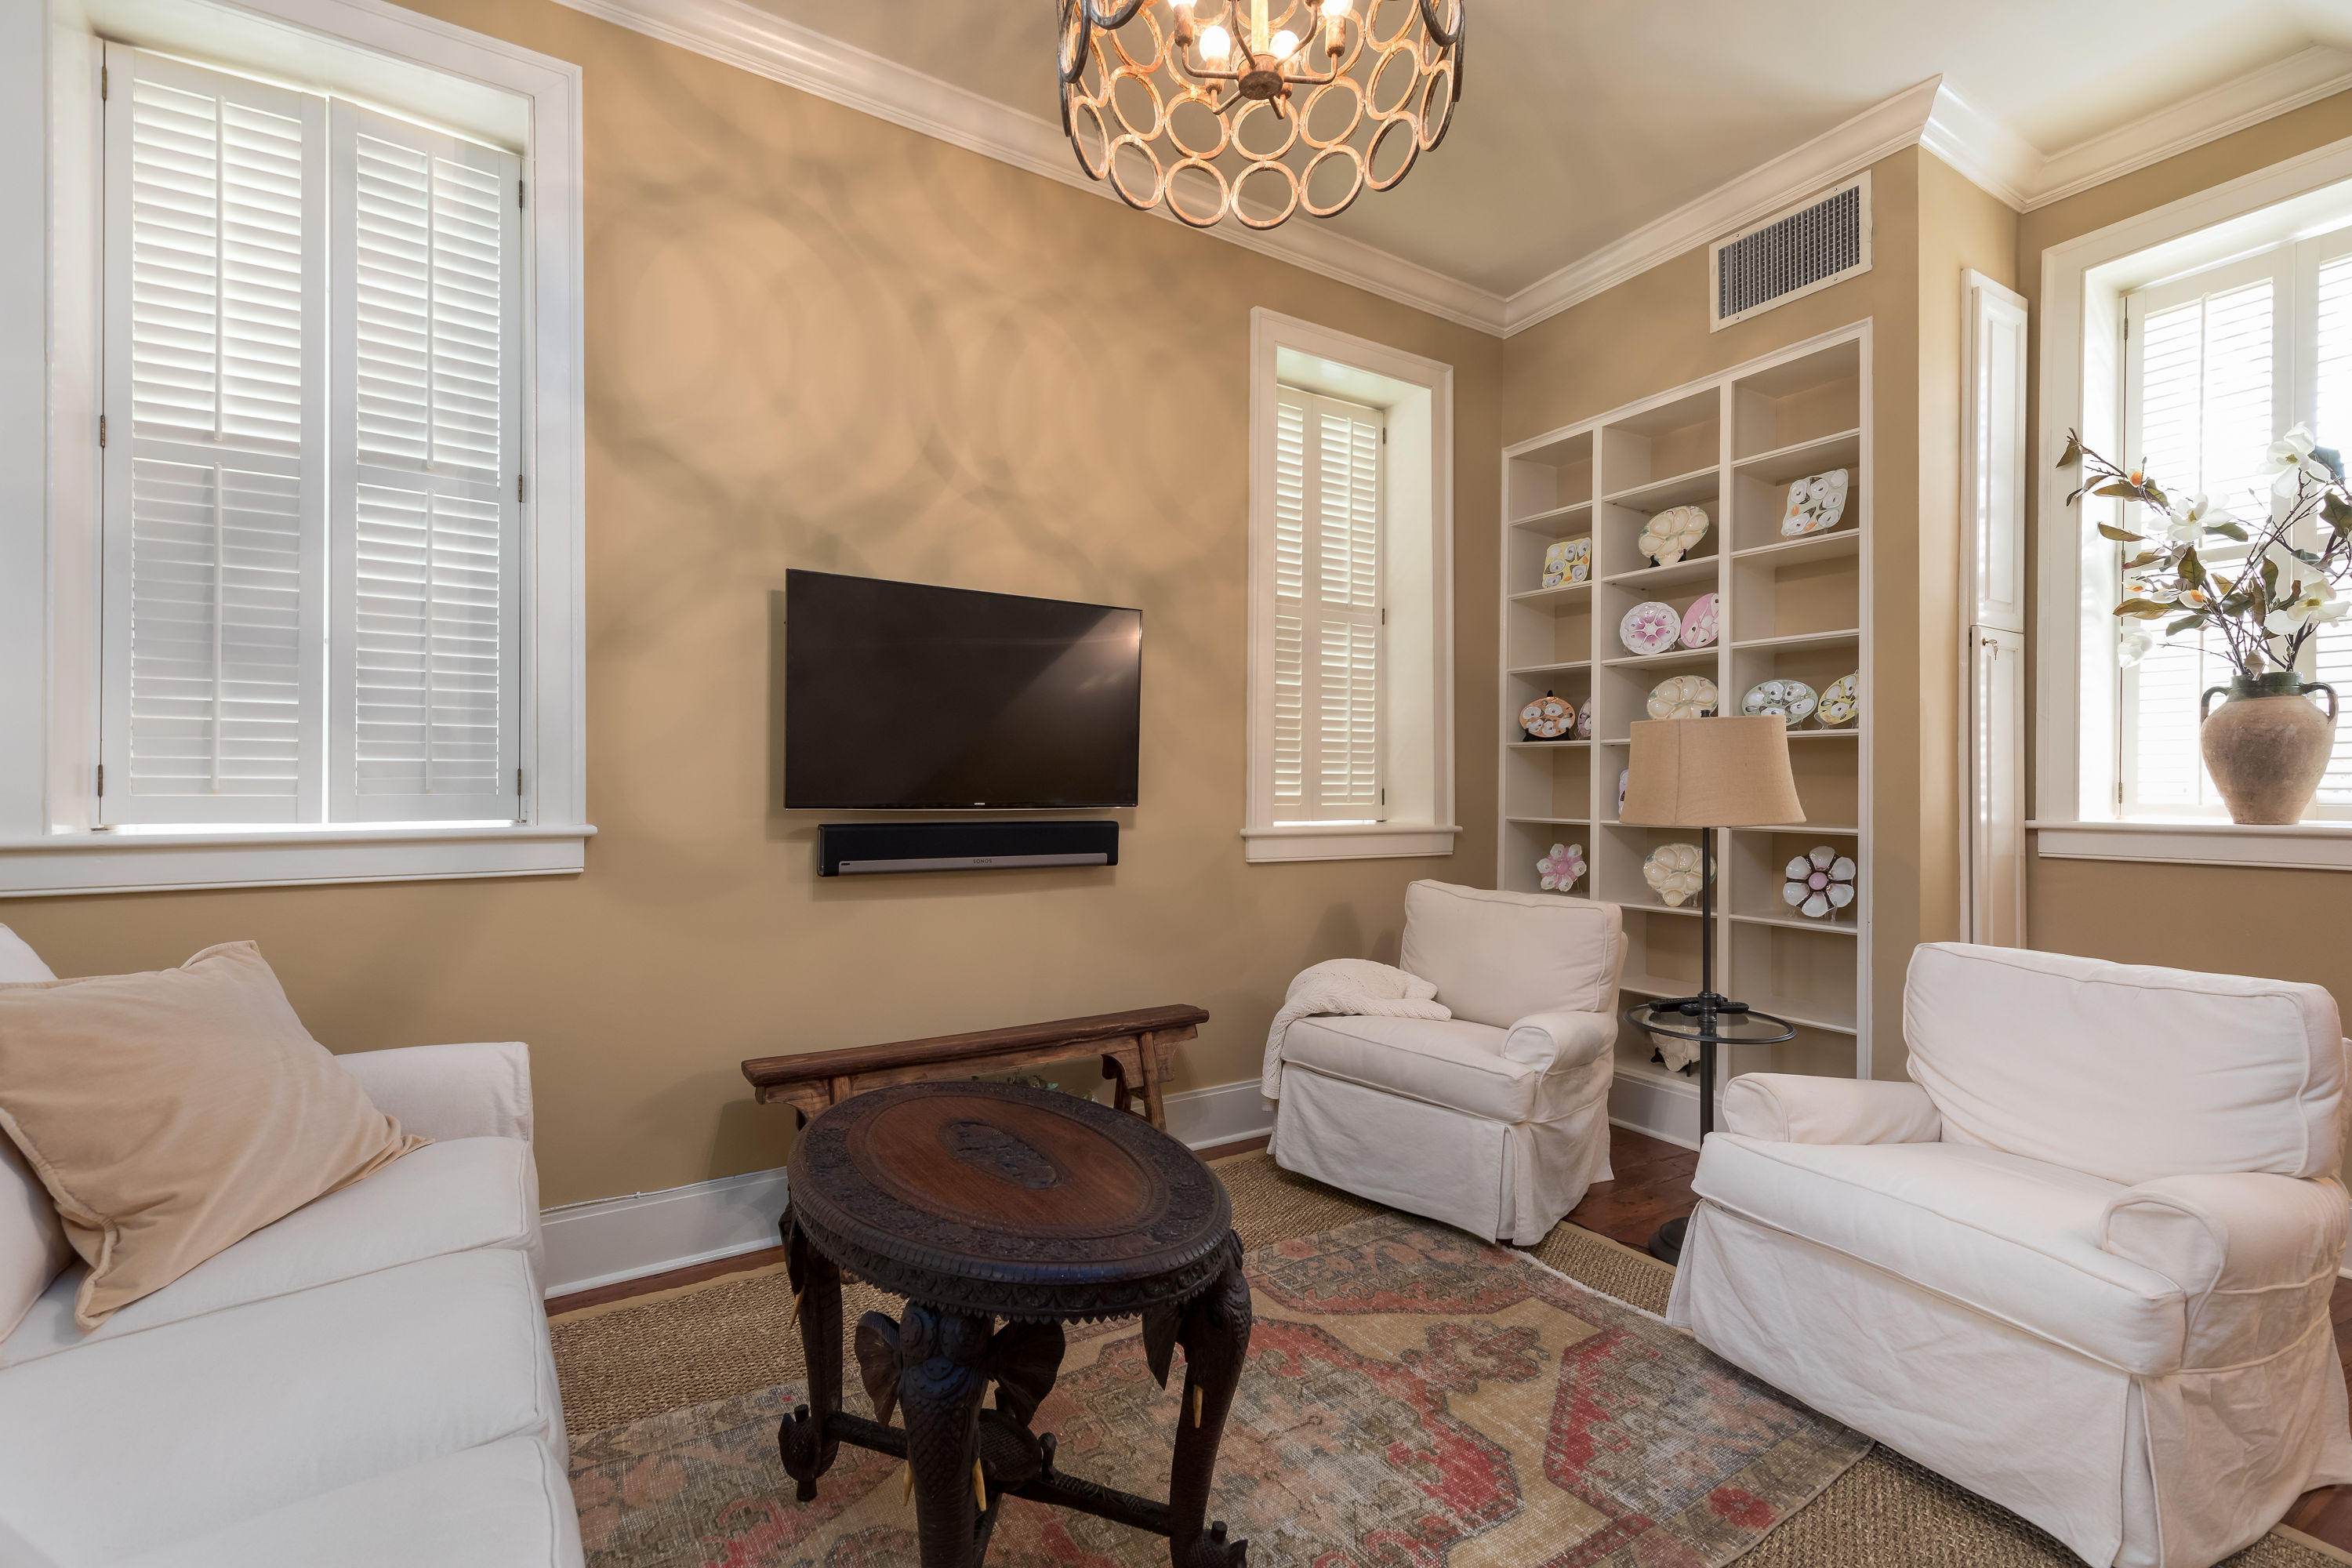 South of Broad Homes For Sale - 84 Church, Charleston, SC - 11